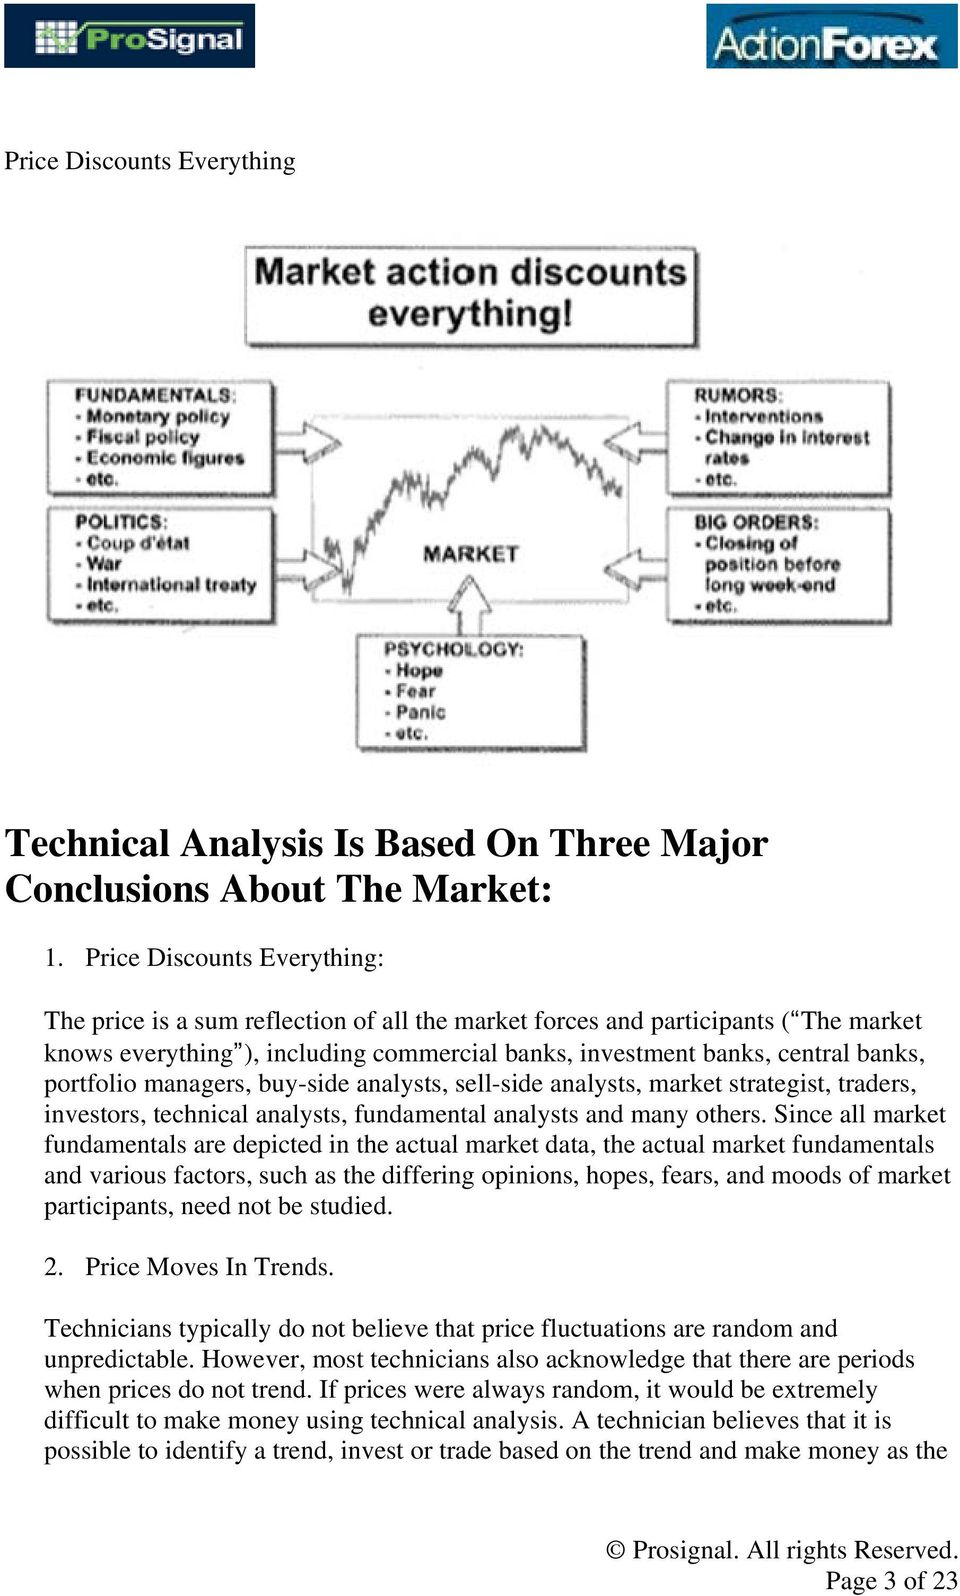 portfolio managers, buy-side analysts, sell-side analysts, market strategist, traders, investors, technical analysts, fundamental analysts and many others.